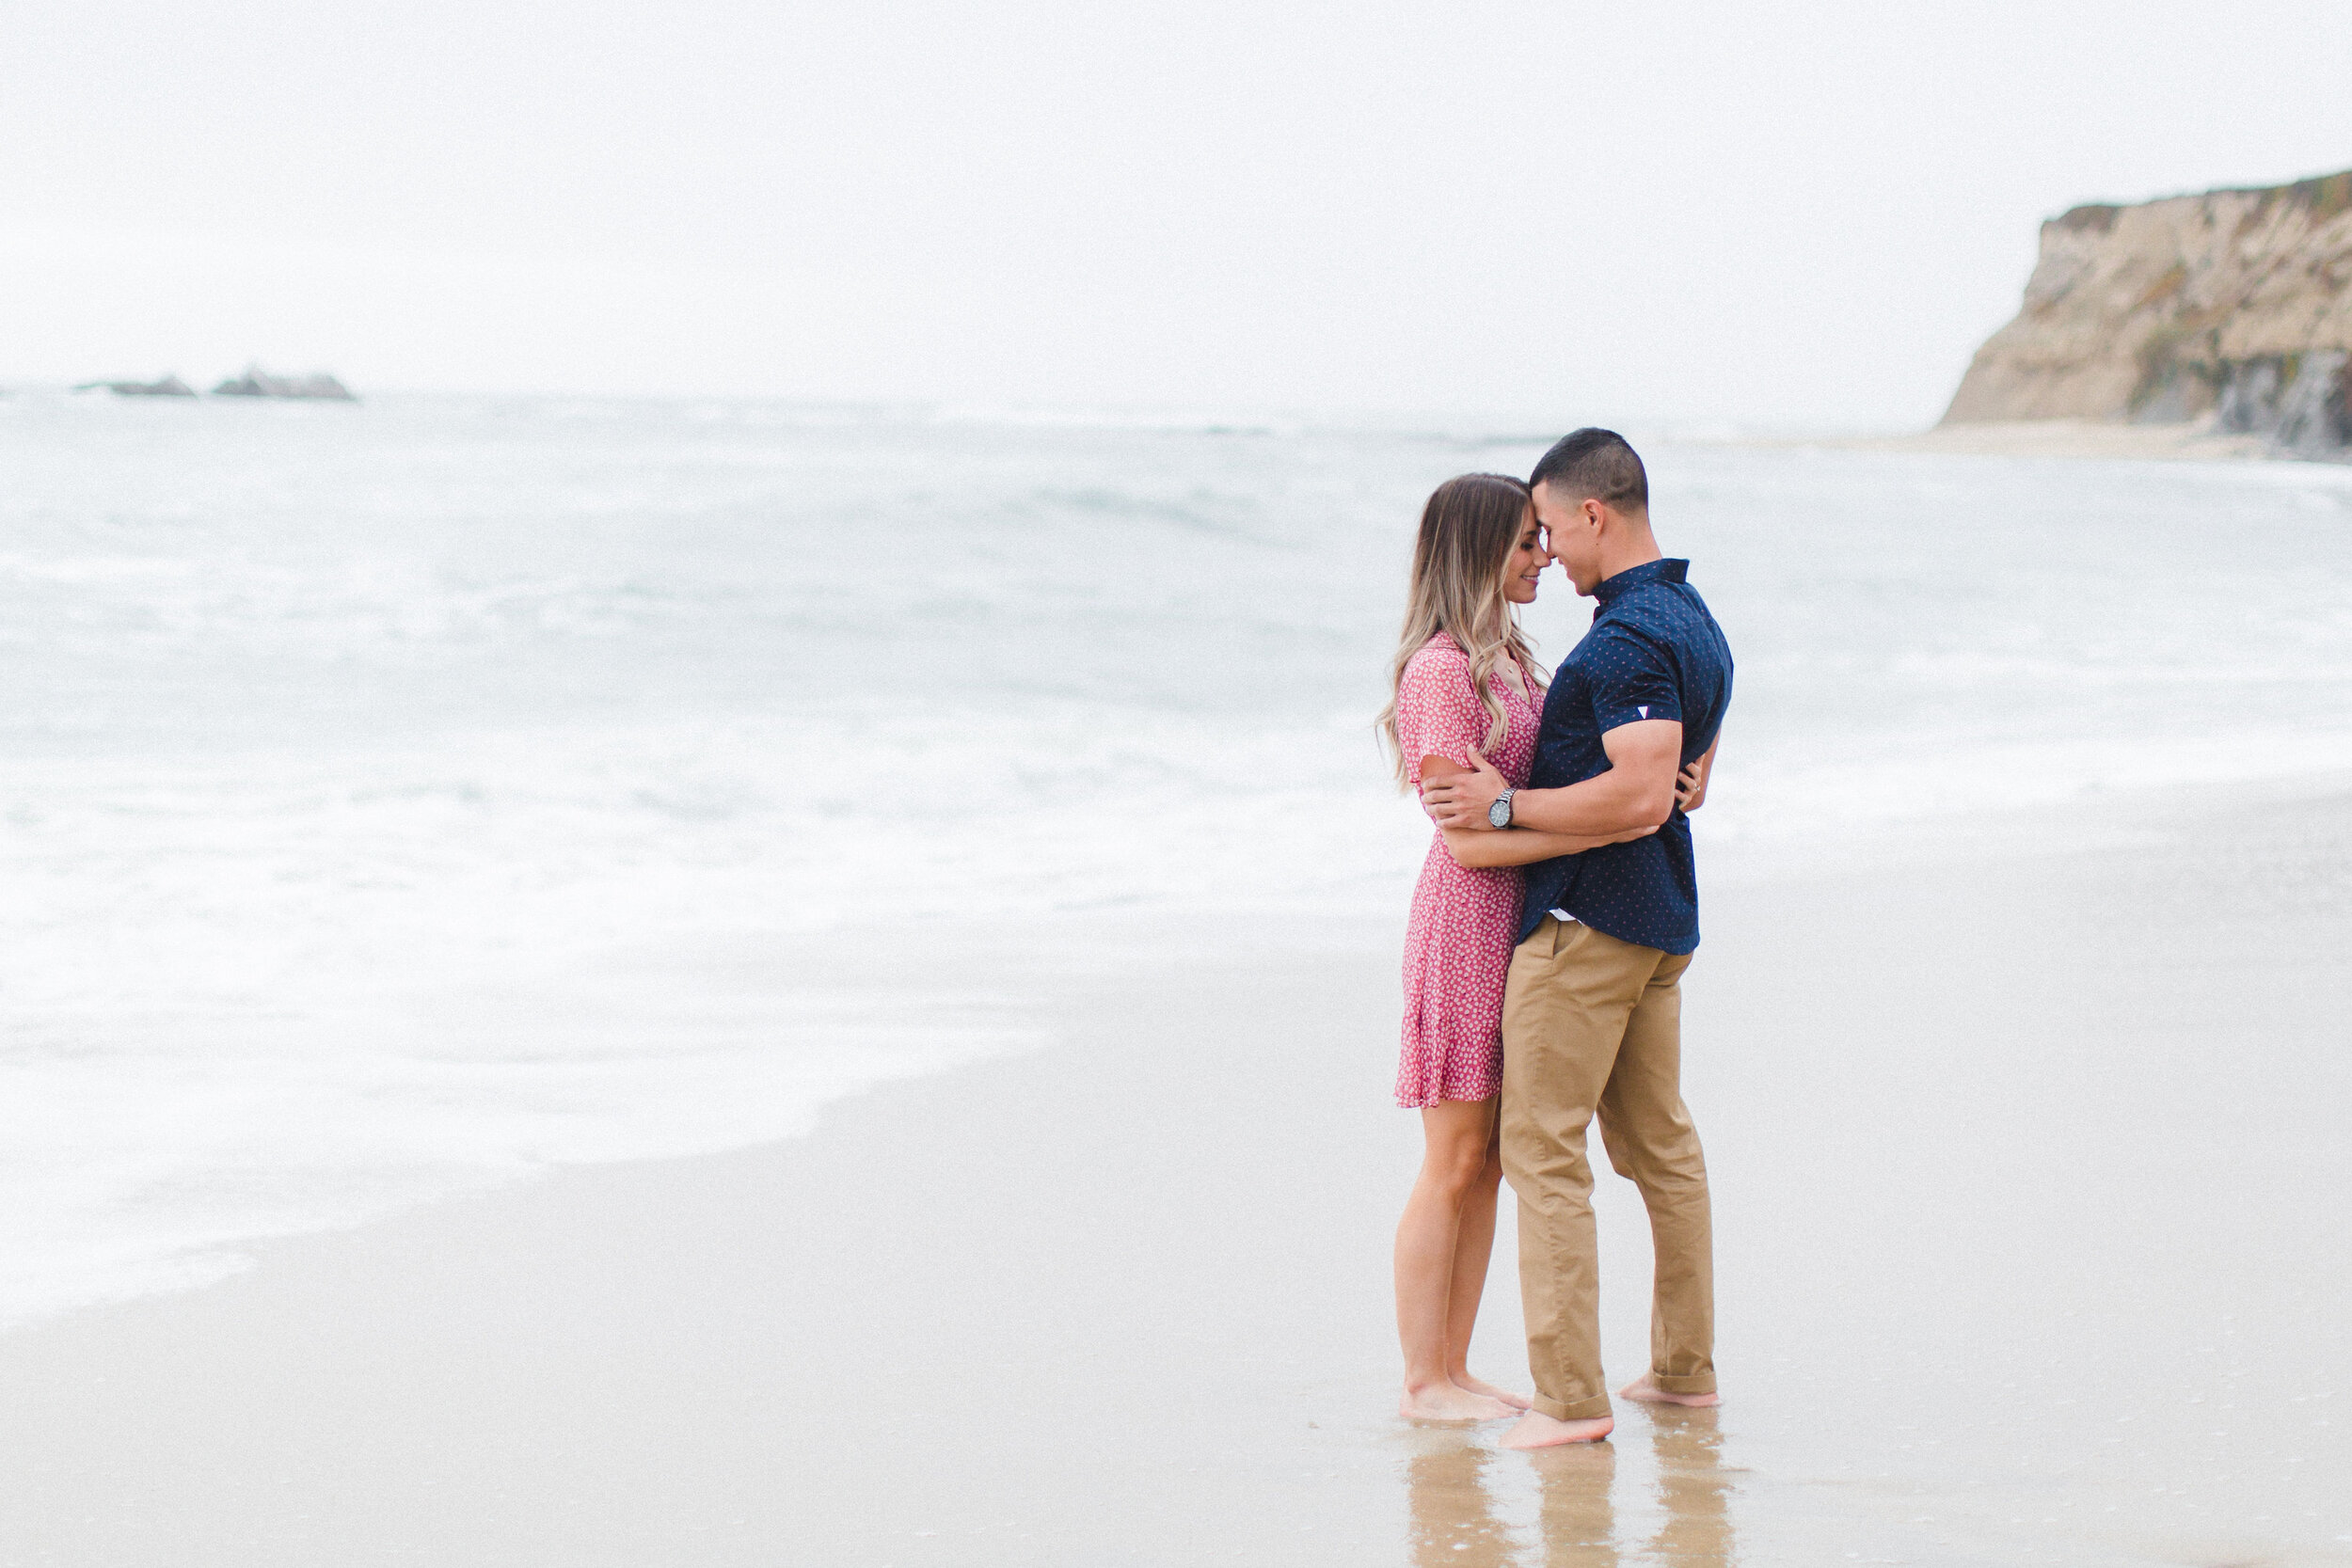 Engagement - Engagement sessions start at $350• Help with finding the best location for your session• Full resolution images with print release• Private online gallery where you can download, share with family and friends, and even order prints